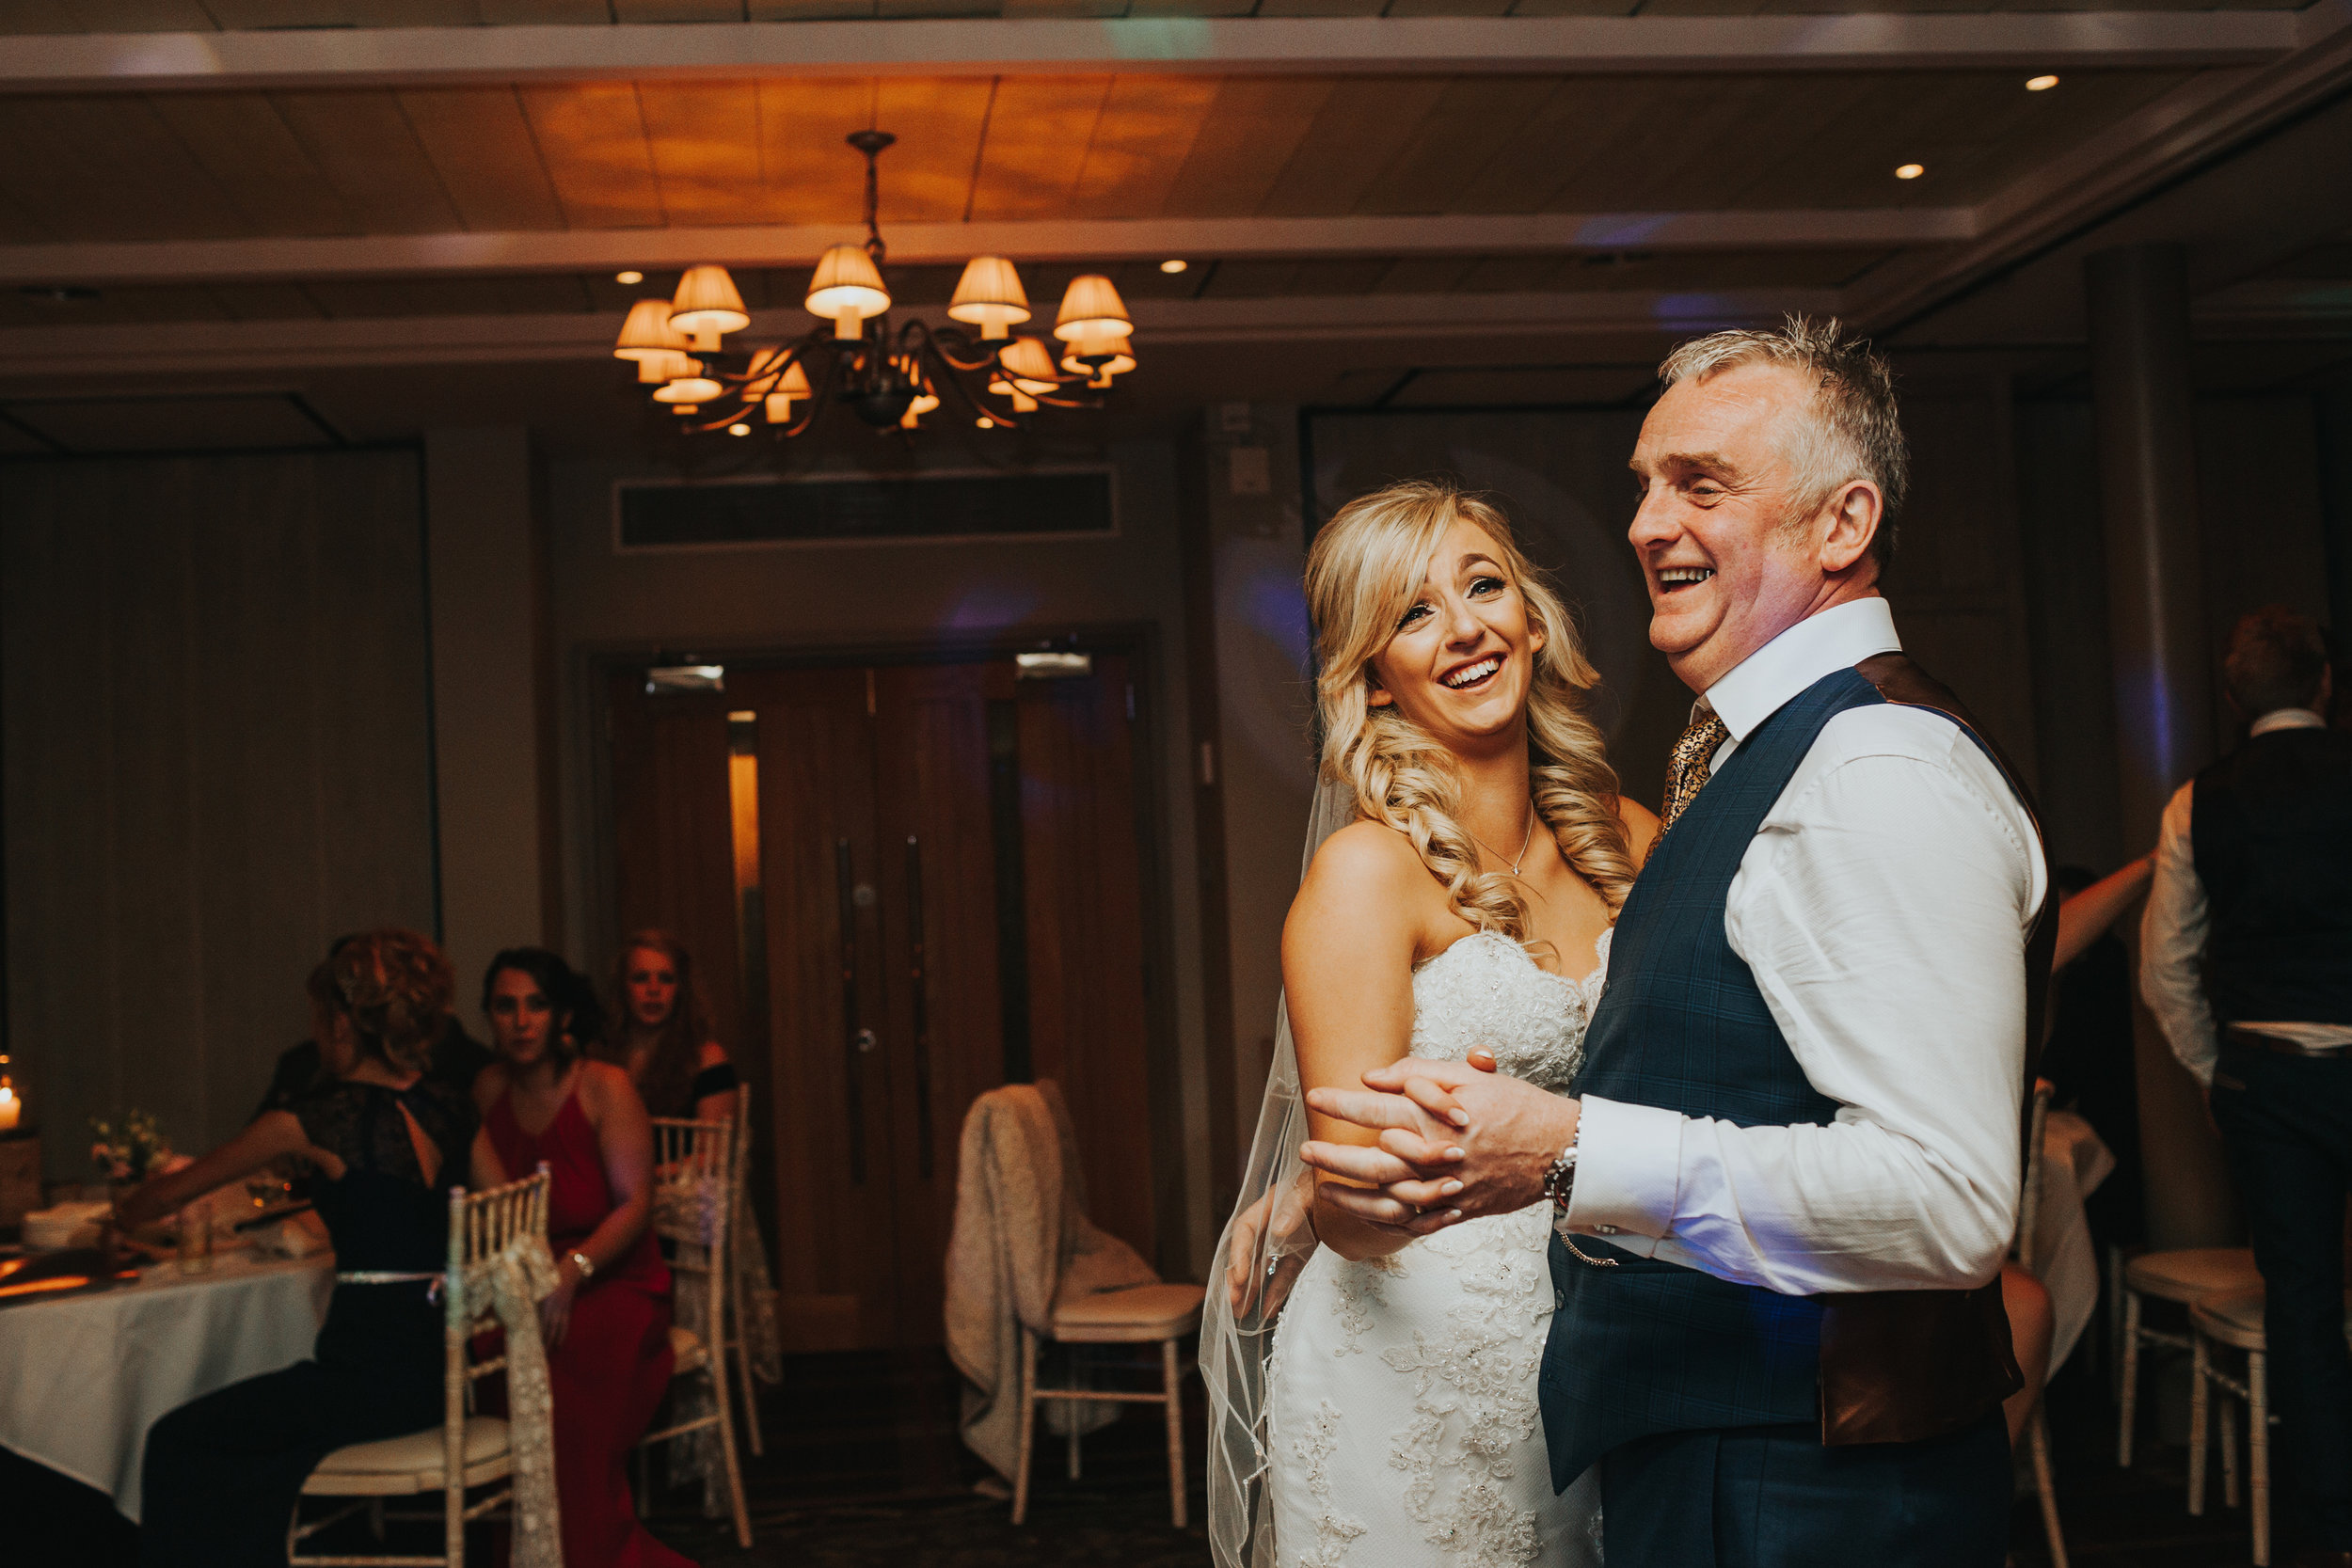 Bride dances with her Dad smiling.